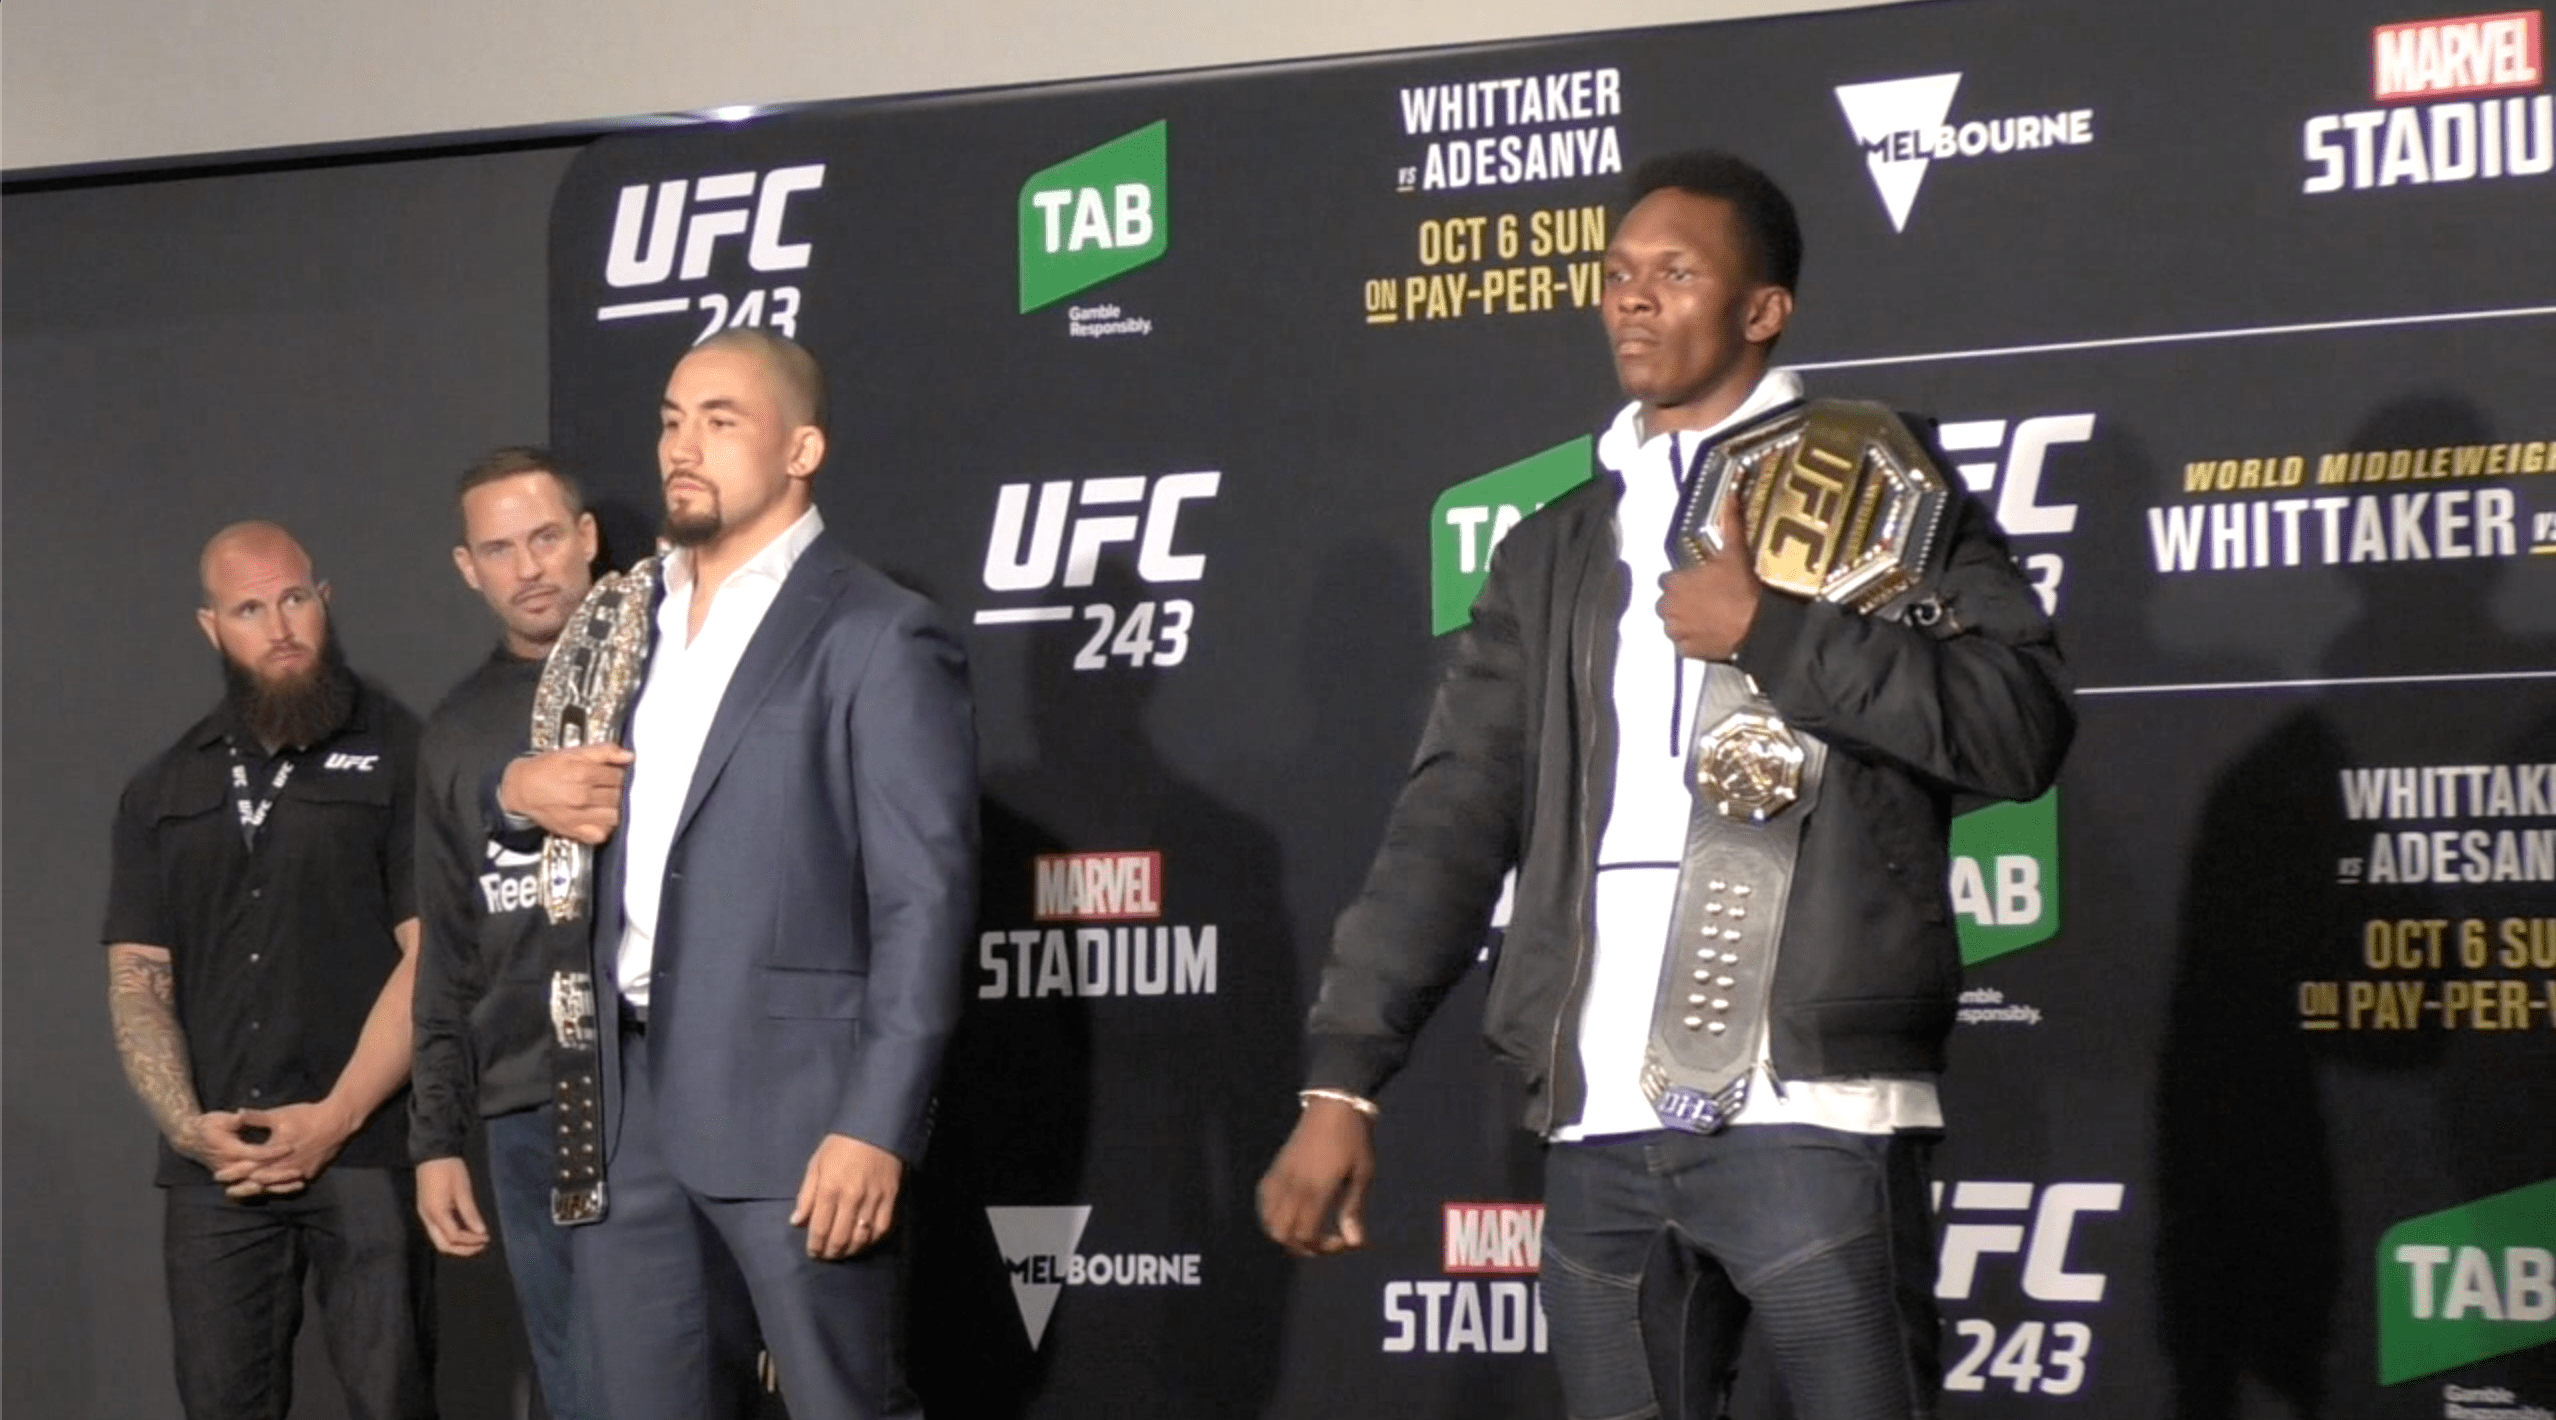 UFC 243 Pre-Fight Interviews, Open Workouts And Weigh-In Video